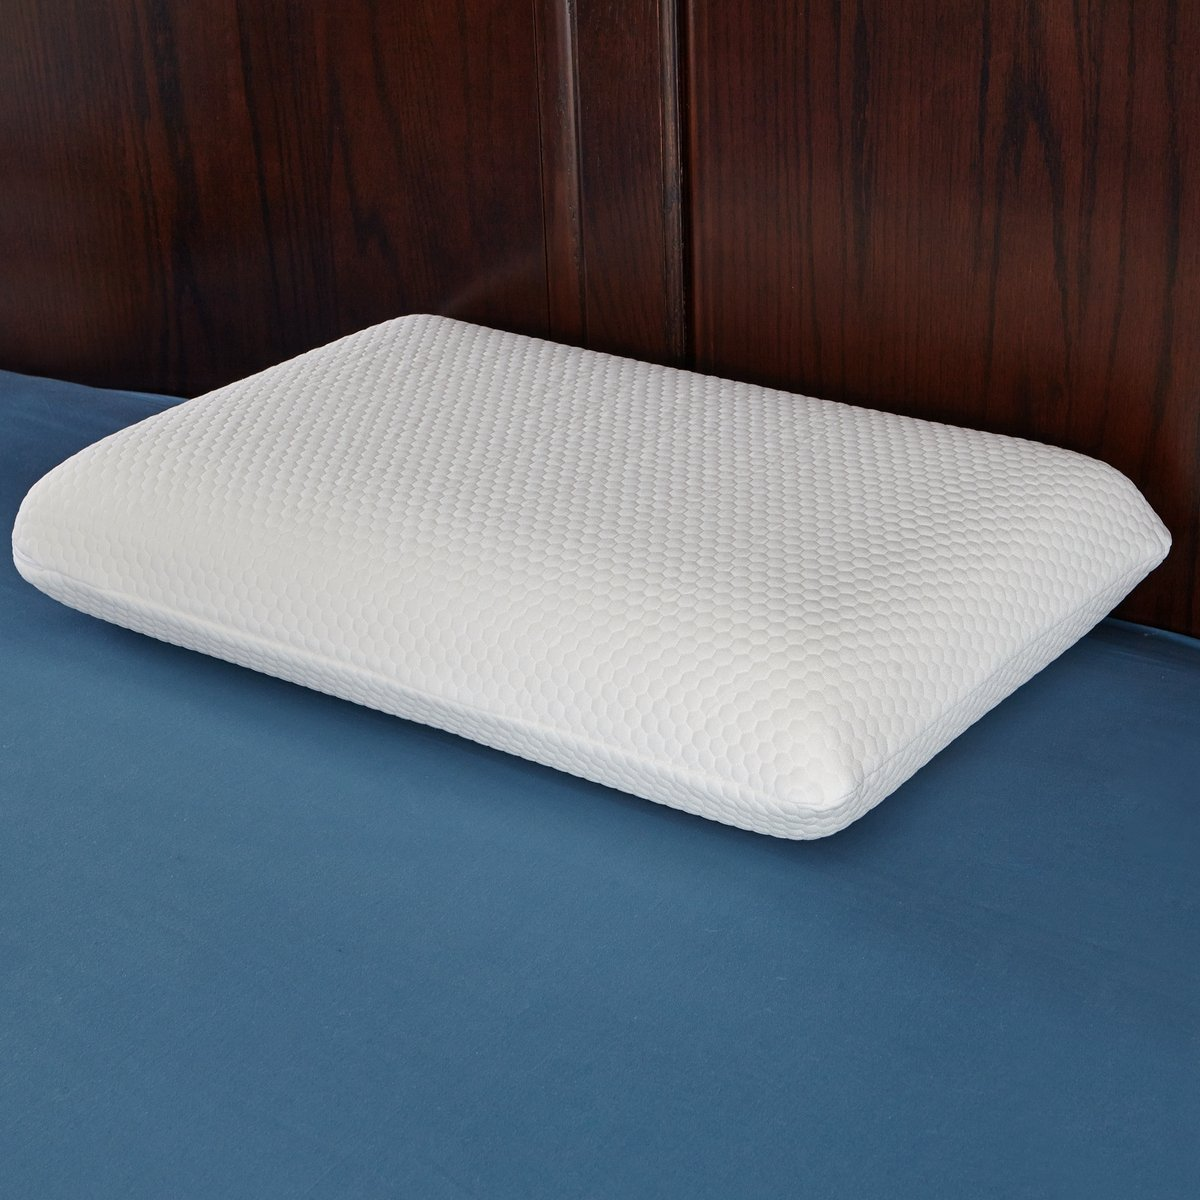 serenity by contour ebay memory is image pillow itm loading tempur pedic foam s